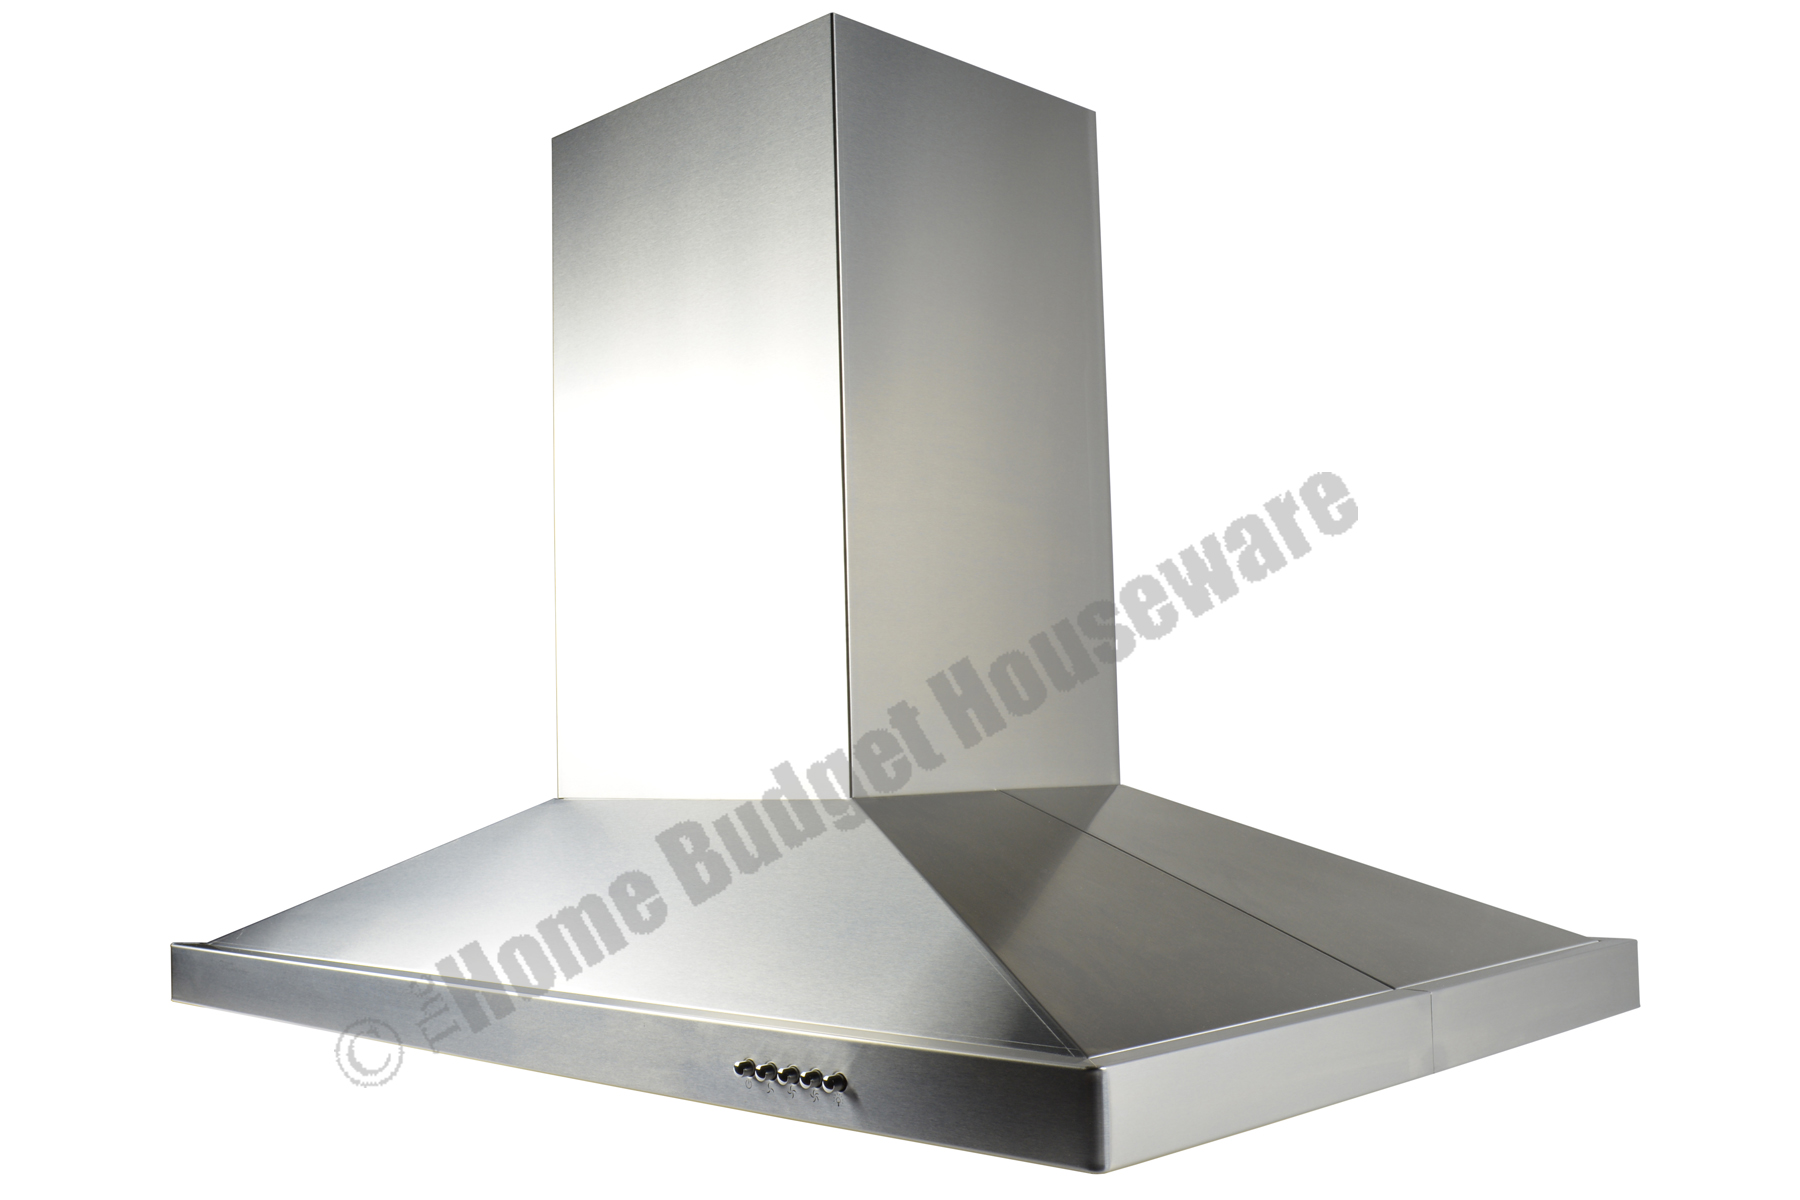 36 Island Stainless Steel Range Hood Vent Free Charcoal